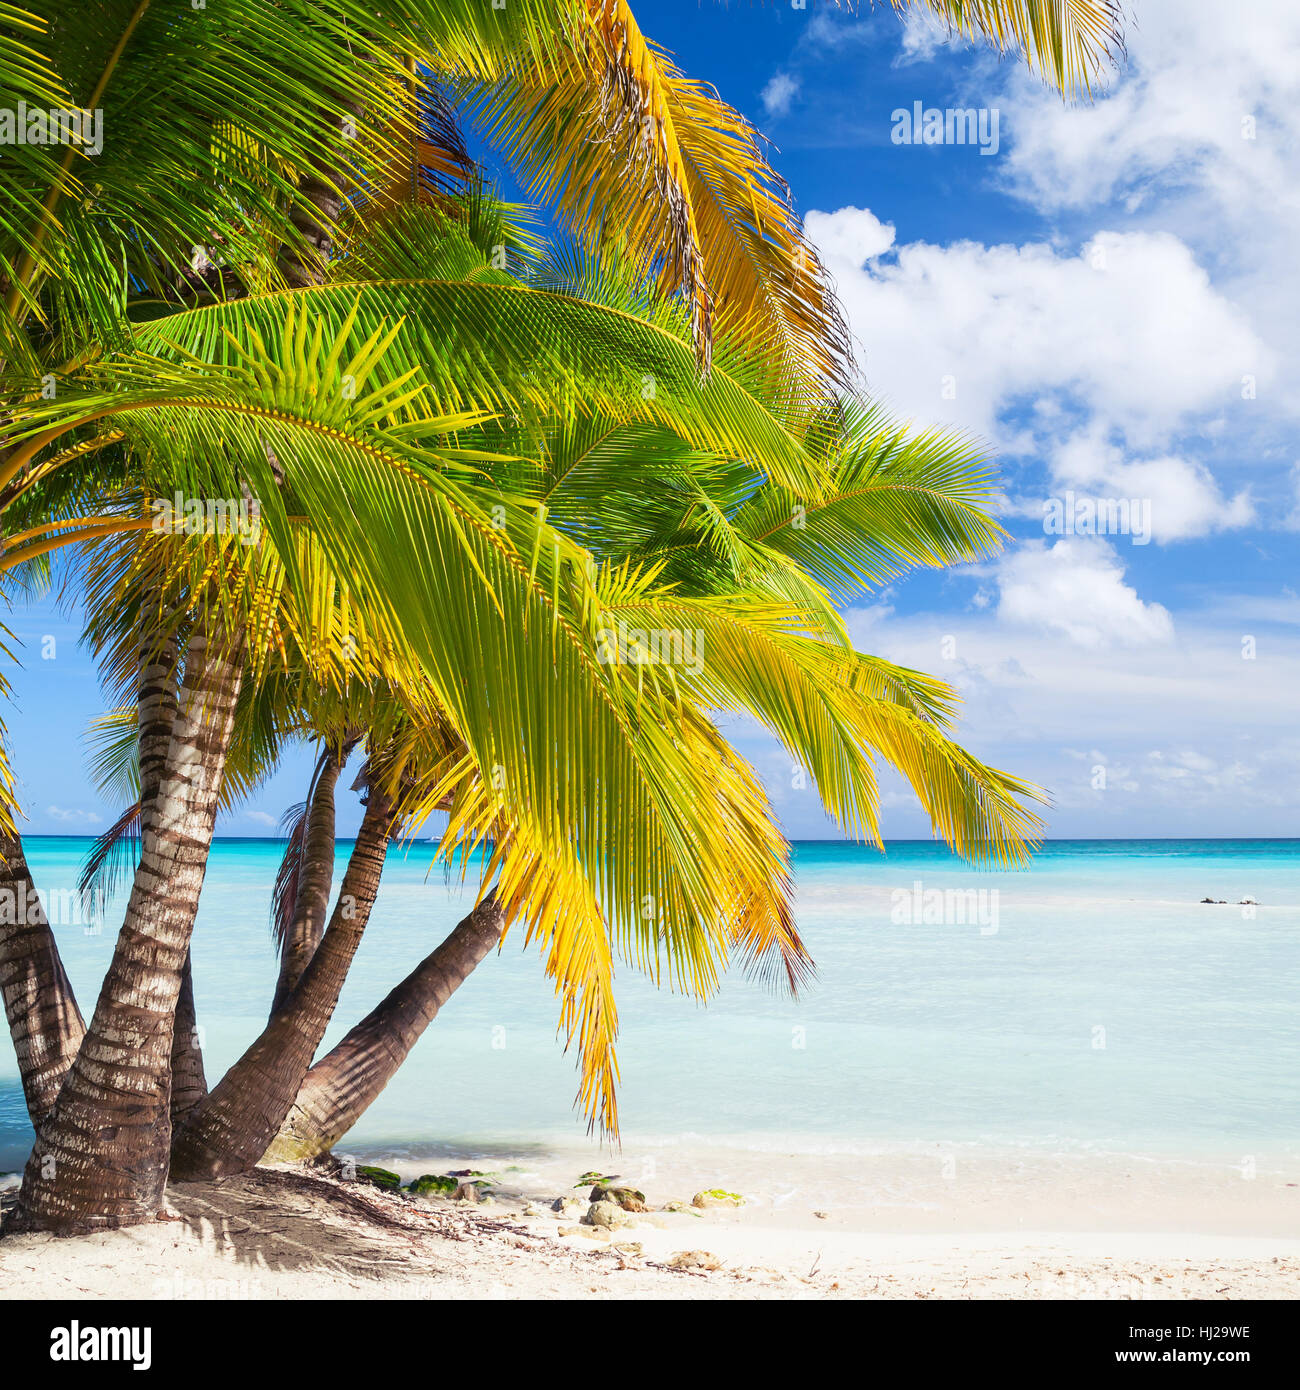 Coconut palms grow on white sandy beach. Caribbean Sea coast, Dominican republic, Saona island. Natural square background - Stock Image